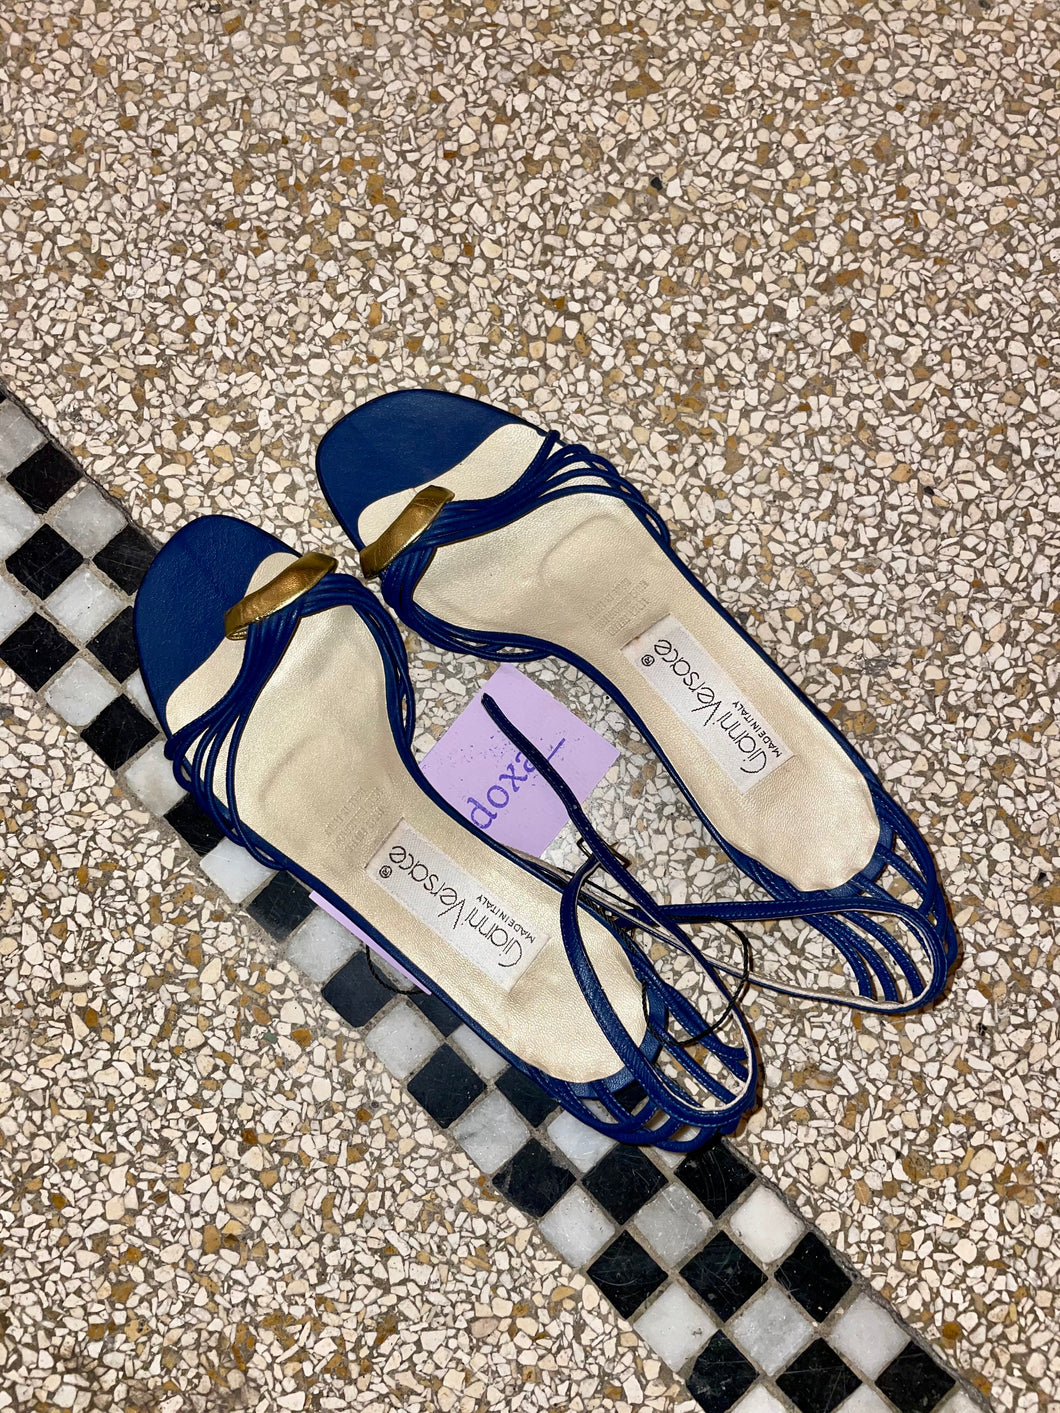 Gianni Versace 80s blue and gold sandals